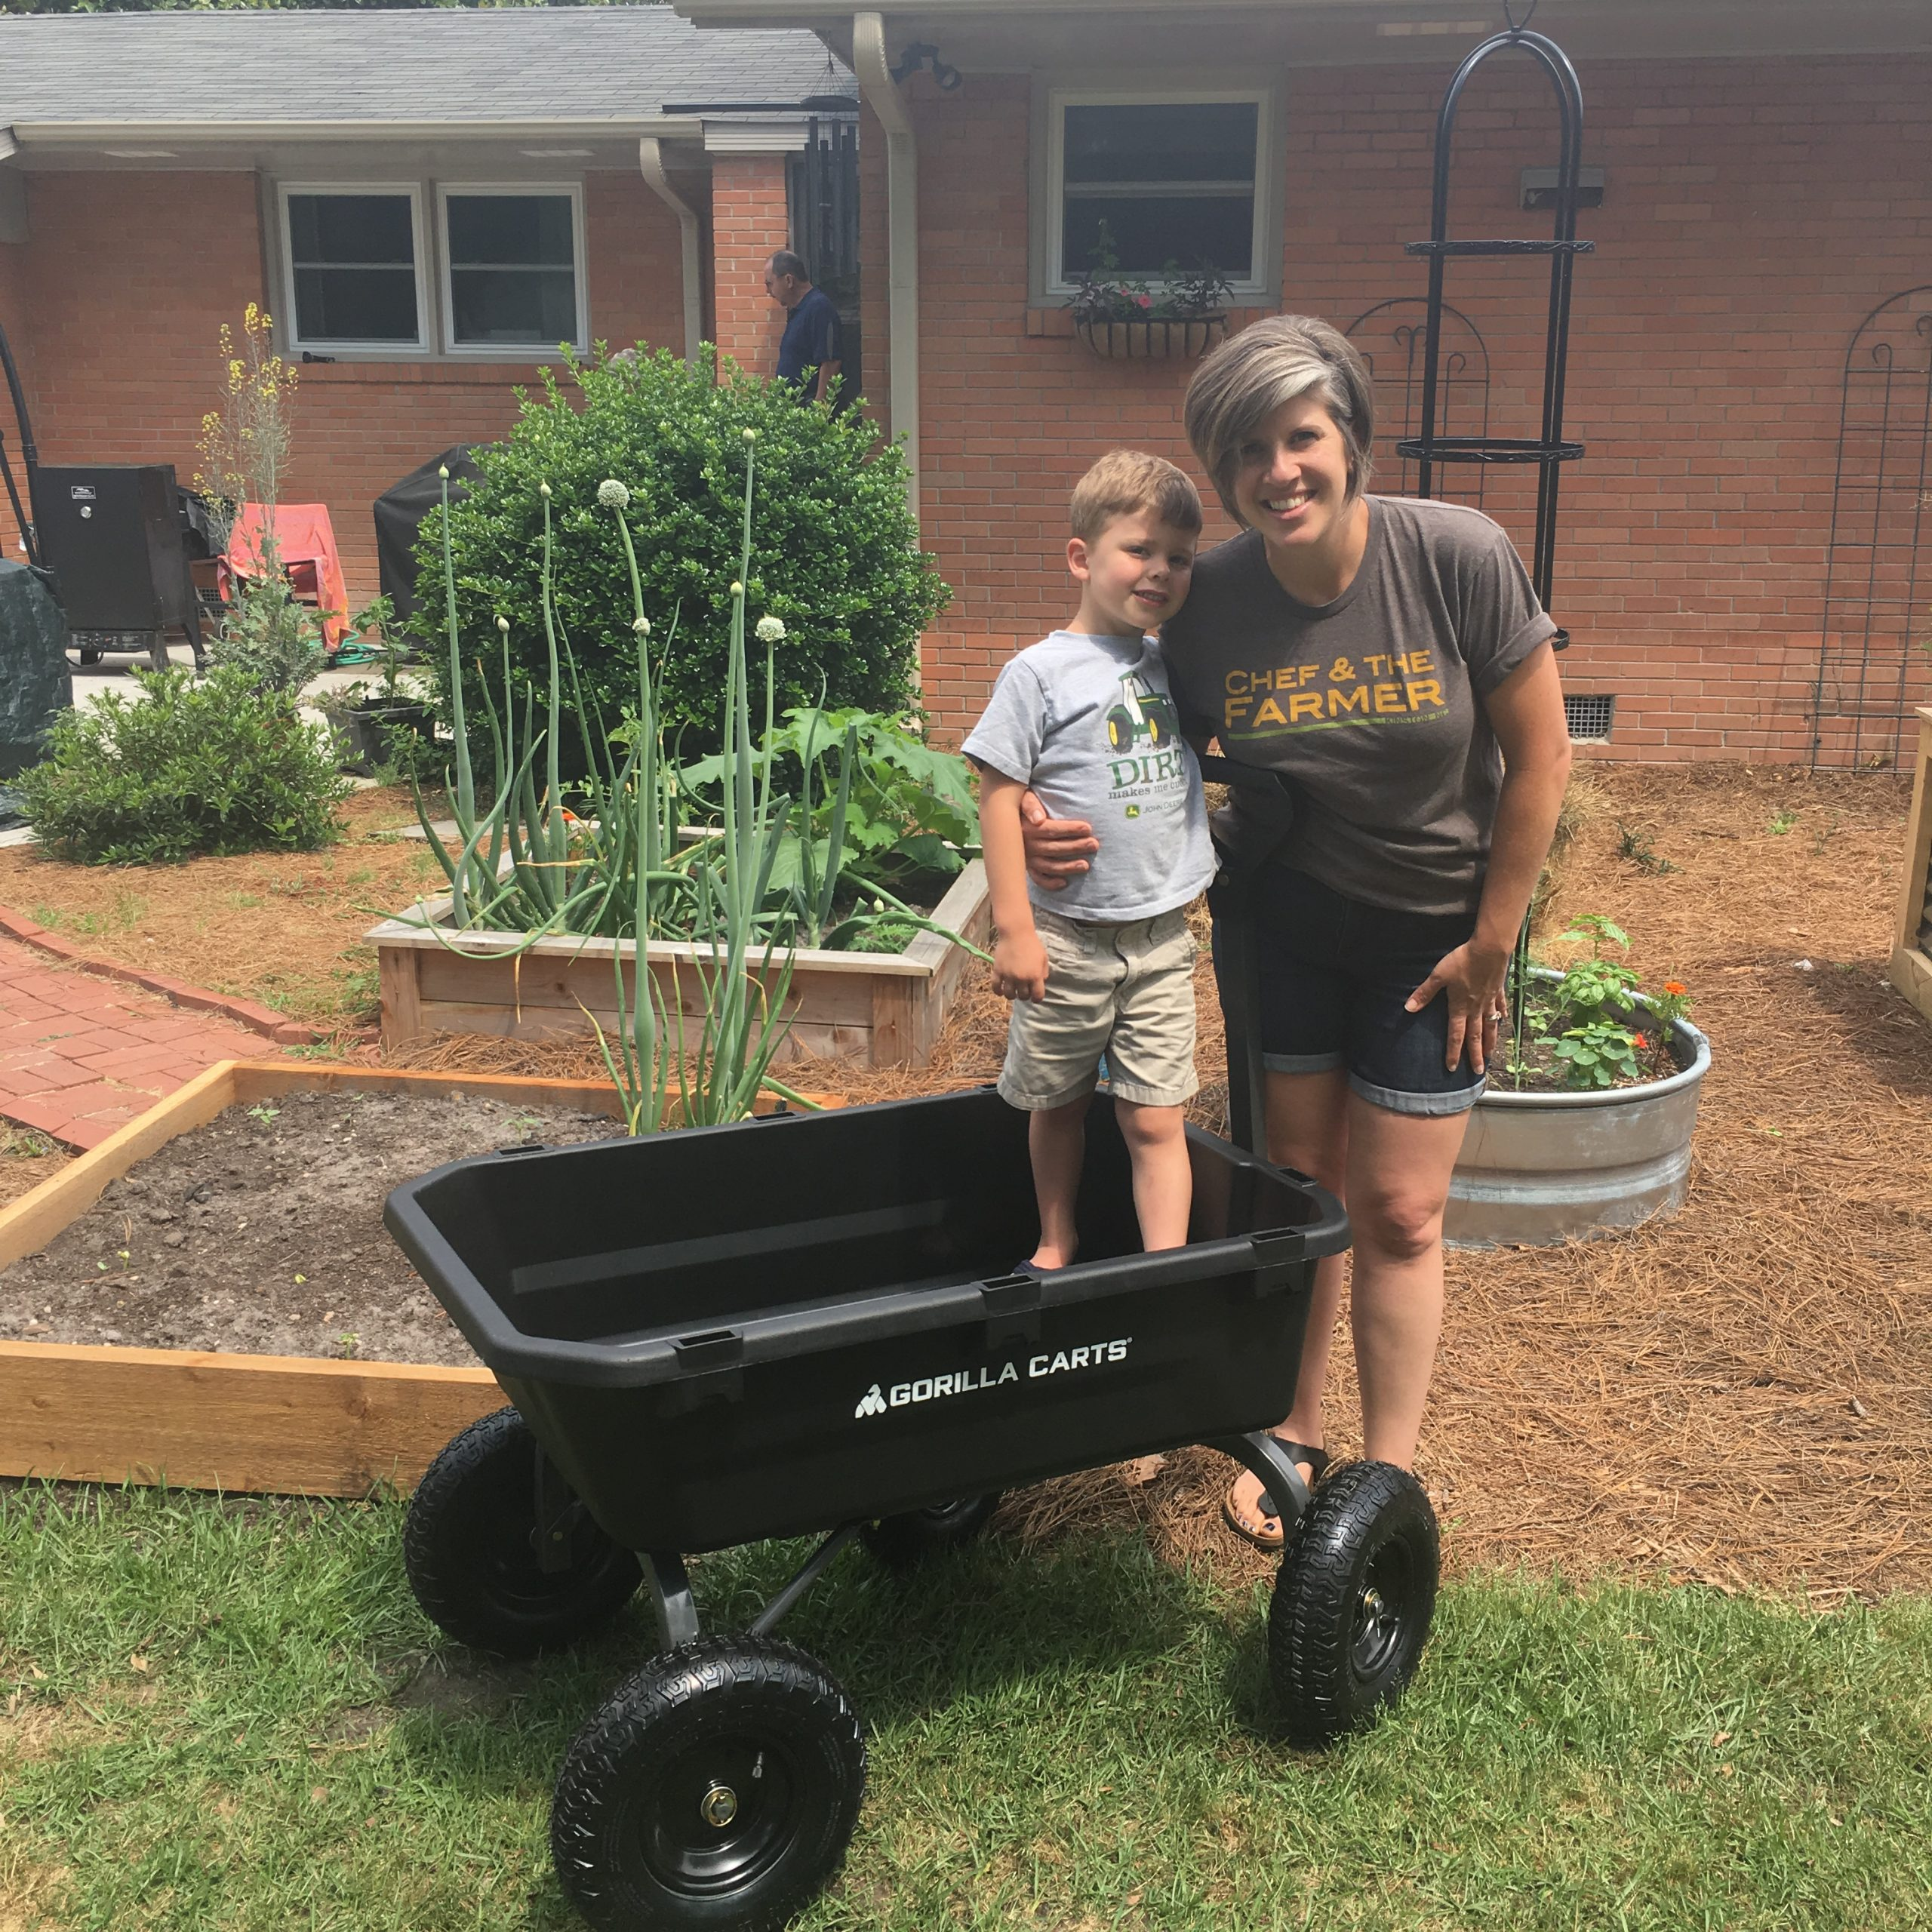 gorilla cart with raised bed garden in background